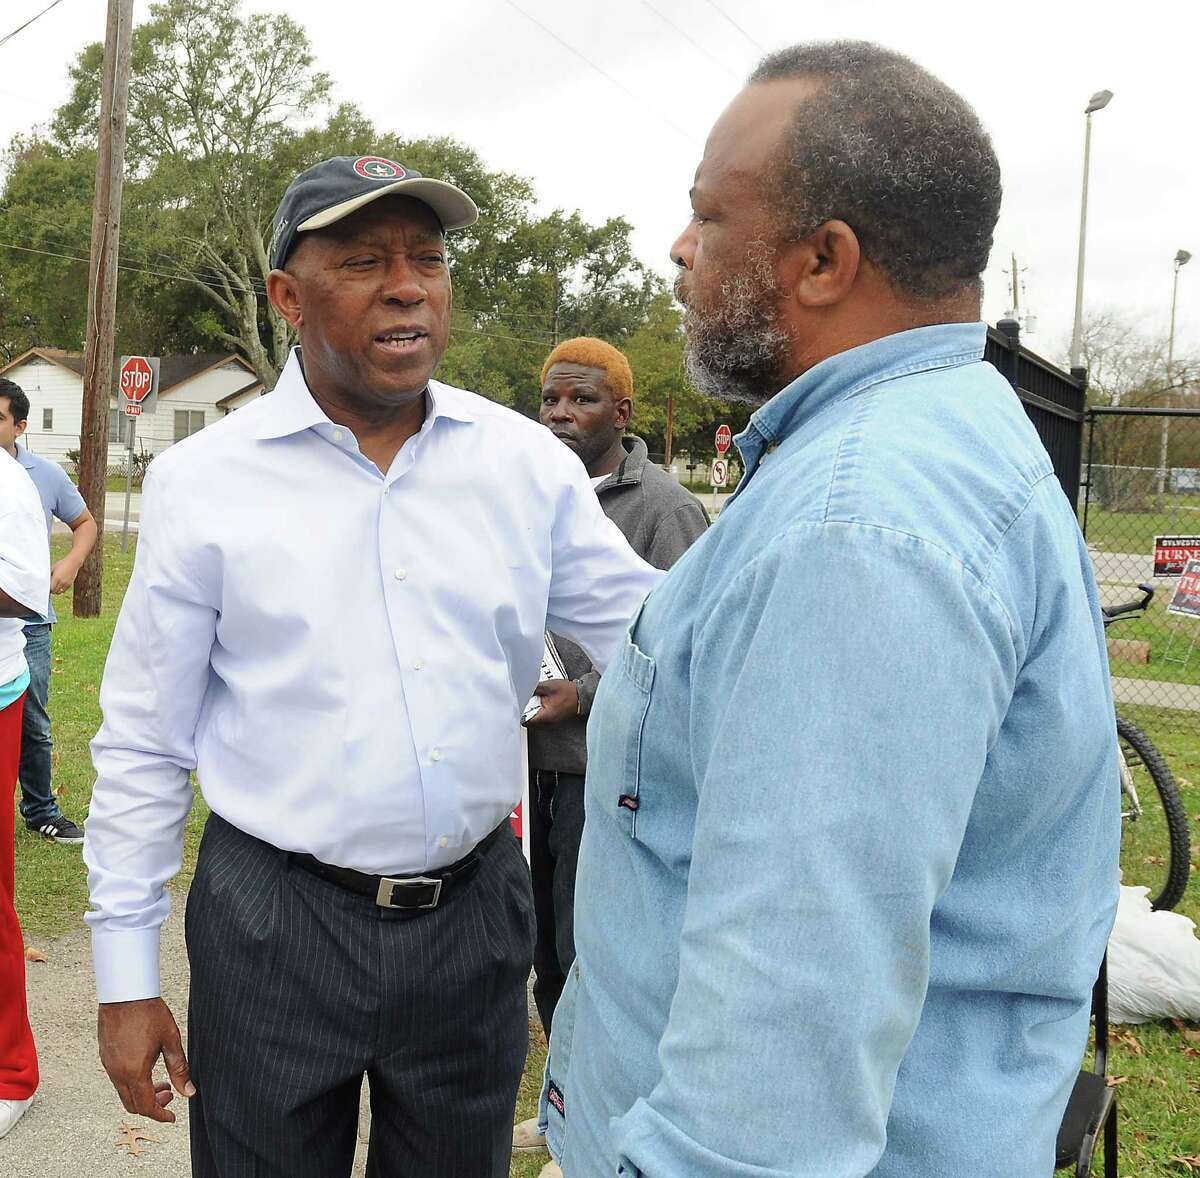 Mayoral candidate Sylvester Turner does some last minute hand-shaking outside Osborne Elementary School Saturday Dec. 12, 2015.(Dave Rossman photo)